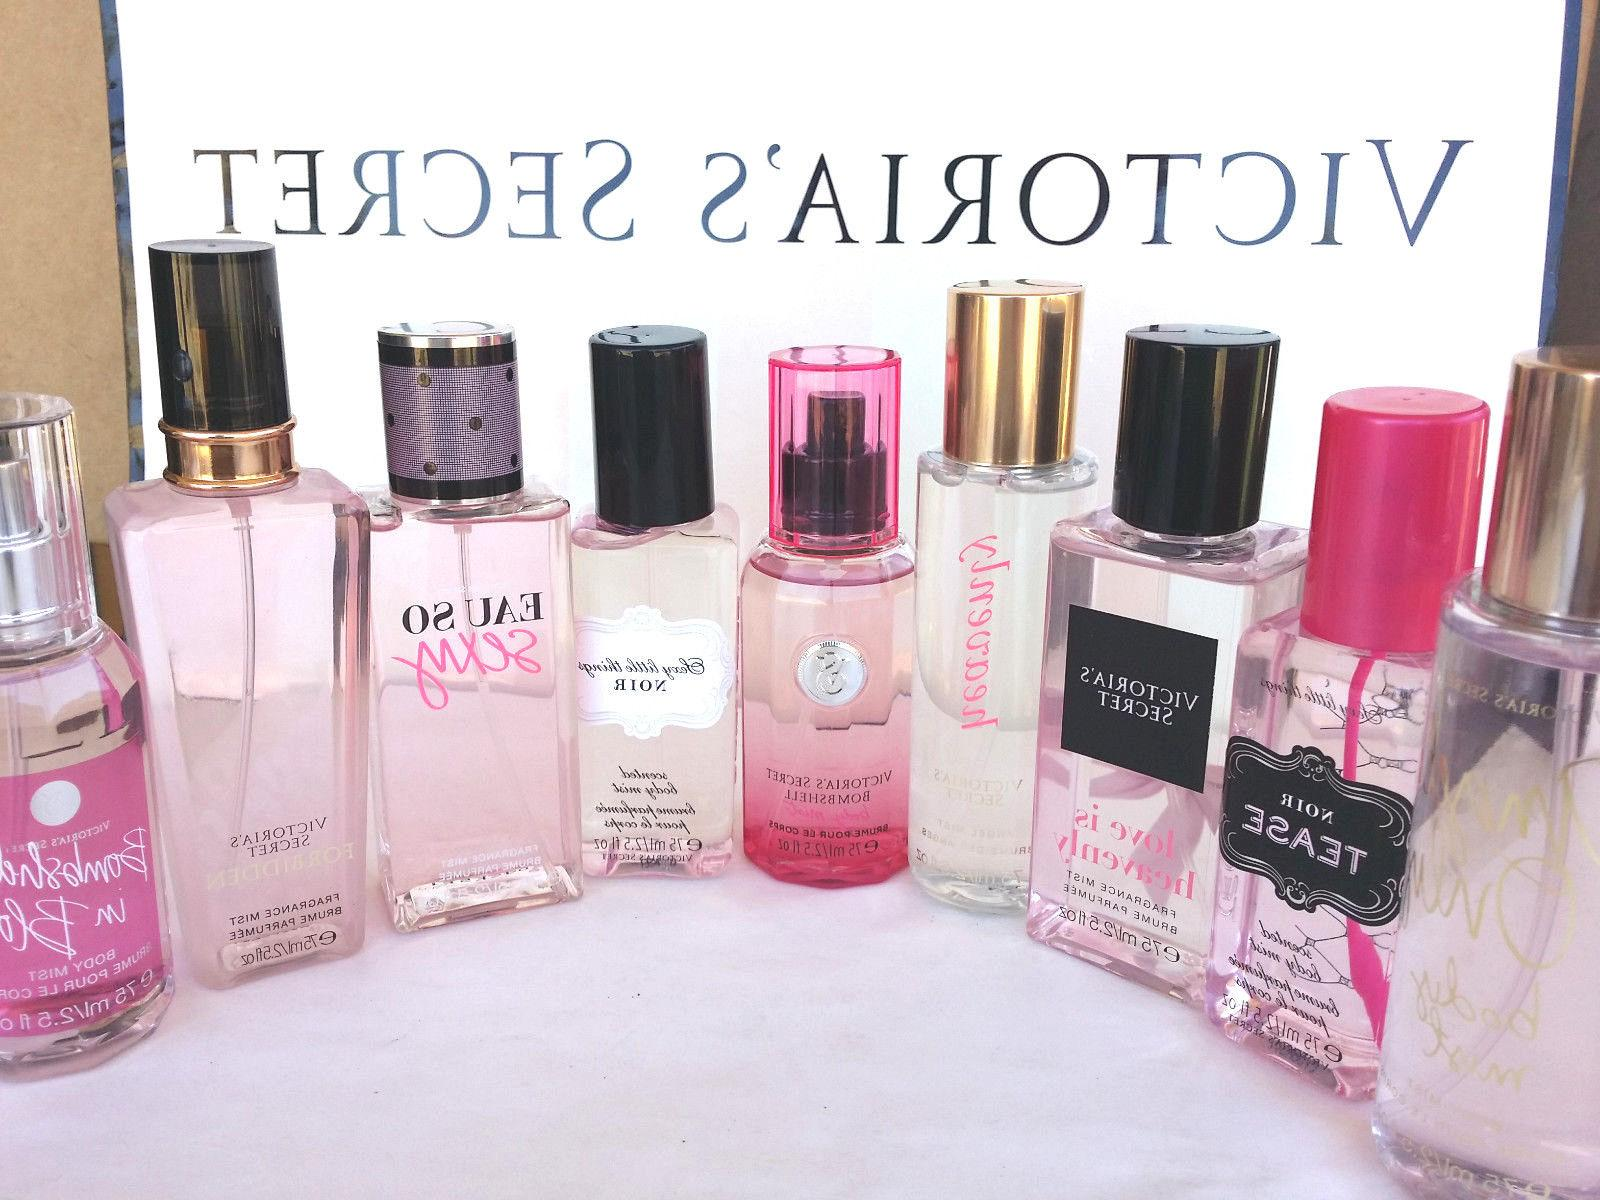 VICTORIA'S SECRET TRAVEL SIZE FRAGRANCE BODY MIST SPRAY PERF